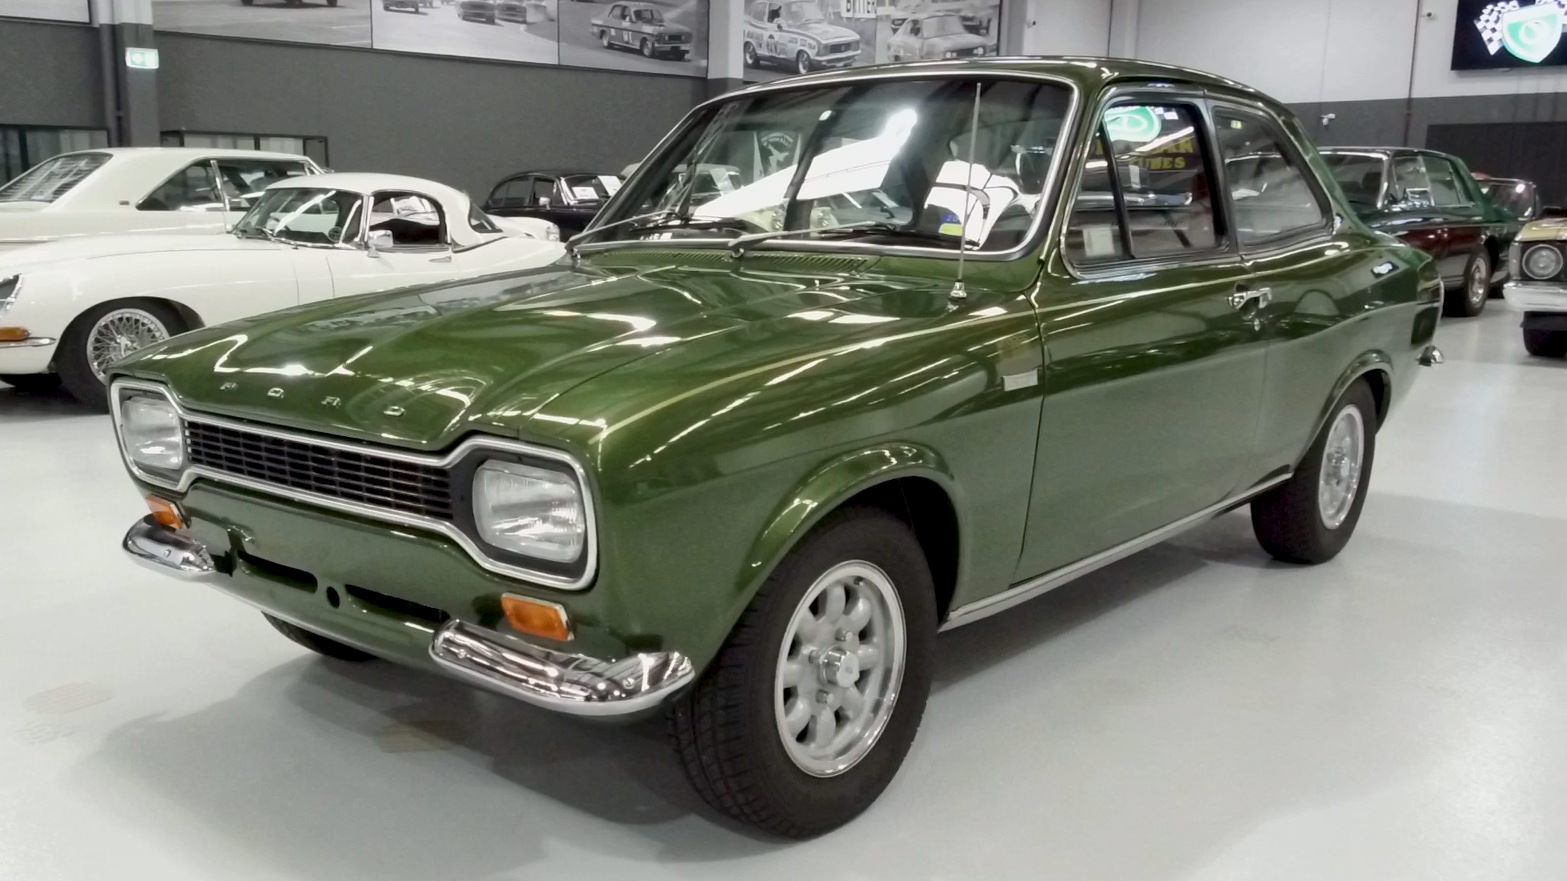 1971 Ford Escort 1600 GT 'Twin Cam' 2Dr Sedan - 2021 Shannons Winter Timed Online Auction